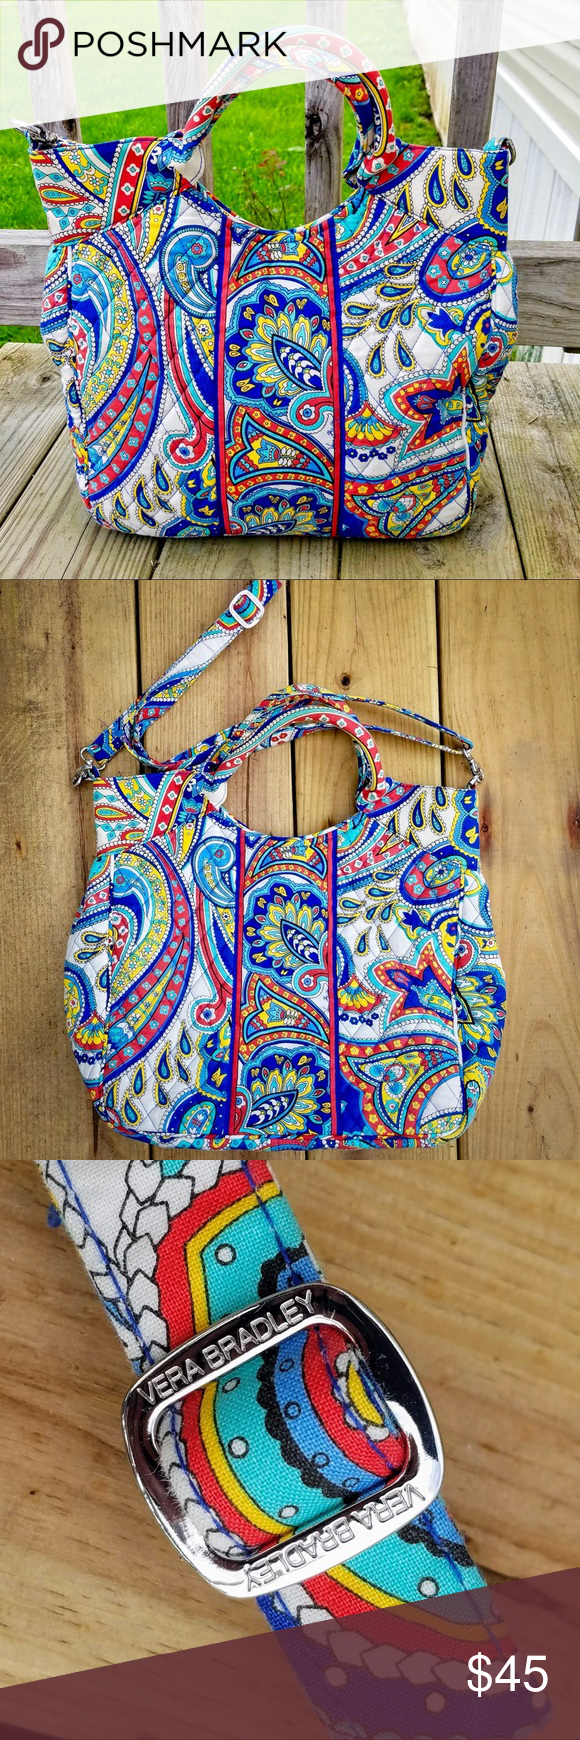 e6ad6517877 Vera Bradley Quilted Tote With Removable Strap Vera Bradley Quilted Tote  Purse With Removable Strap Very good gently used condition.